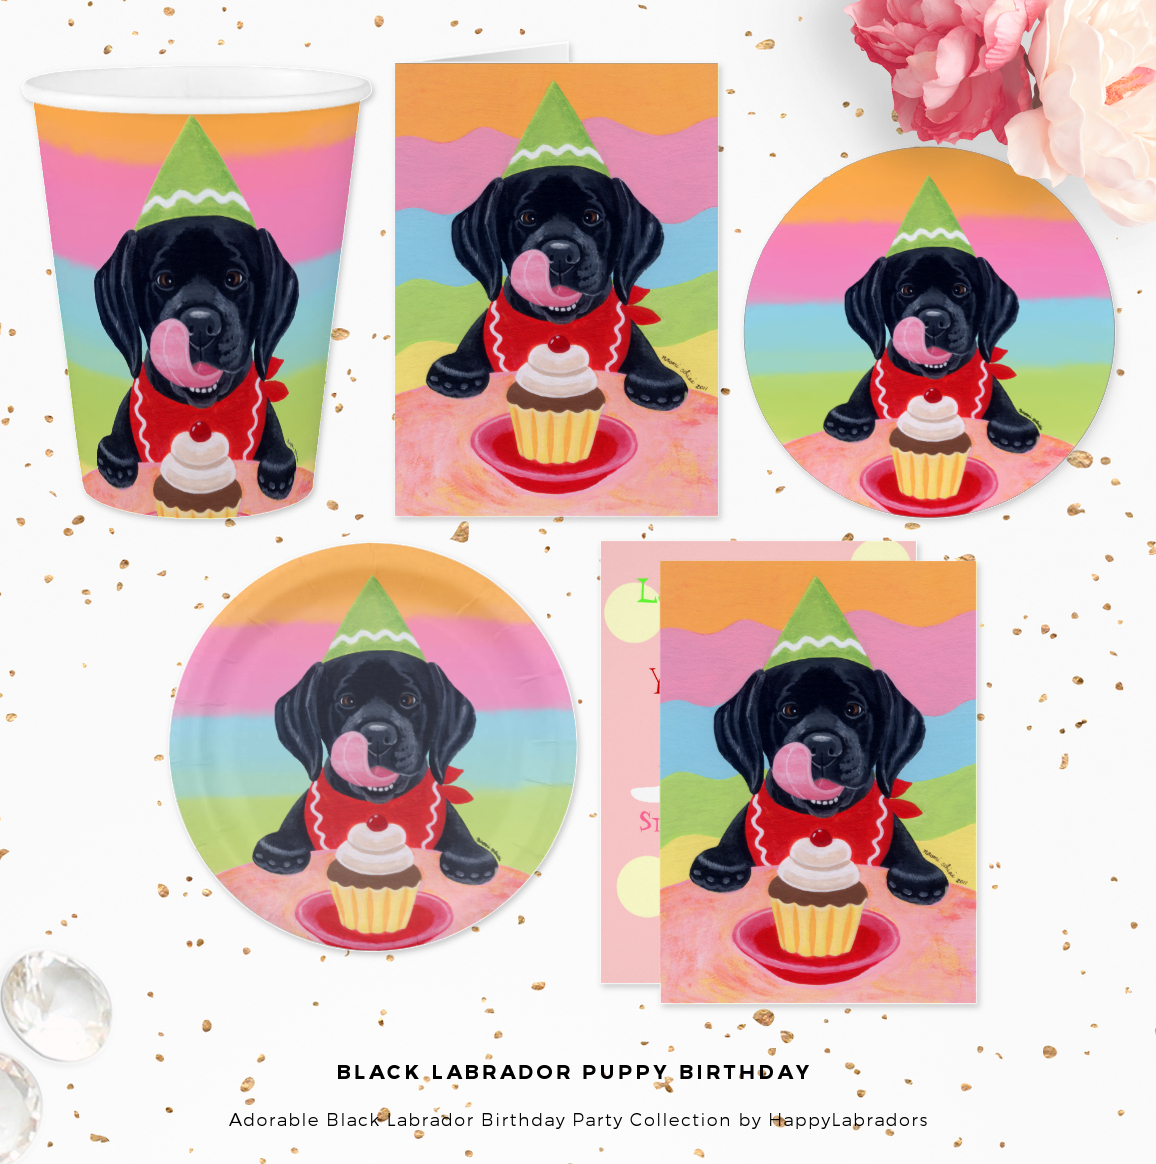 Black Labrador Puppy Birthday Party Collection by HappyLabradors @zazzle